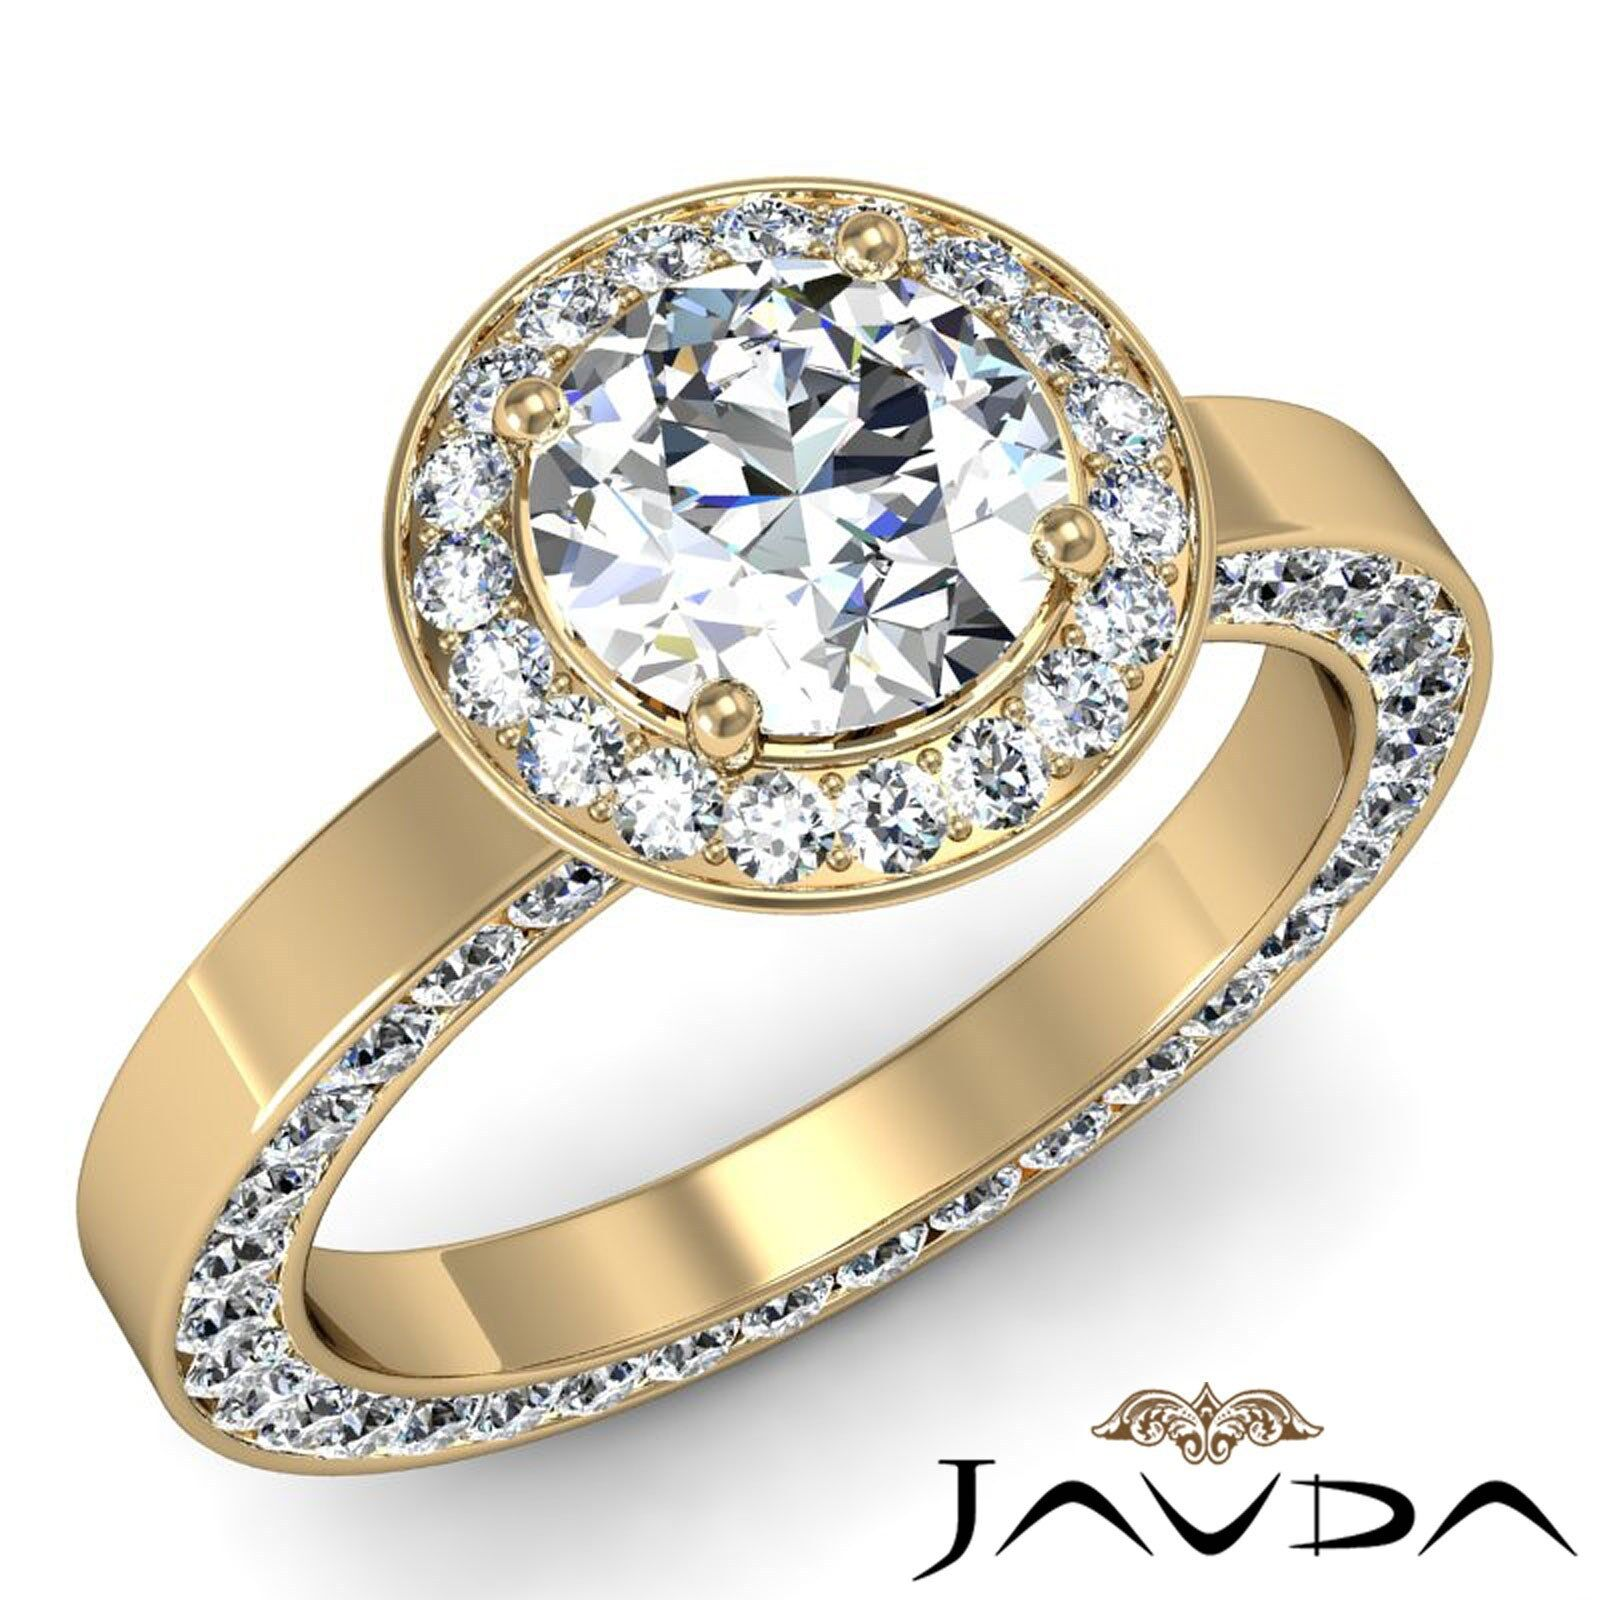 Channel Pave Set Filigree Round Diamond Engagement Gold Ring GIA F VS1 2.83 Ct